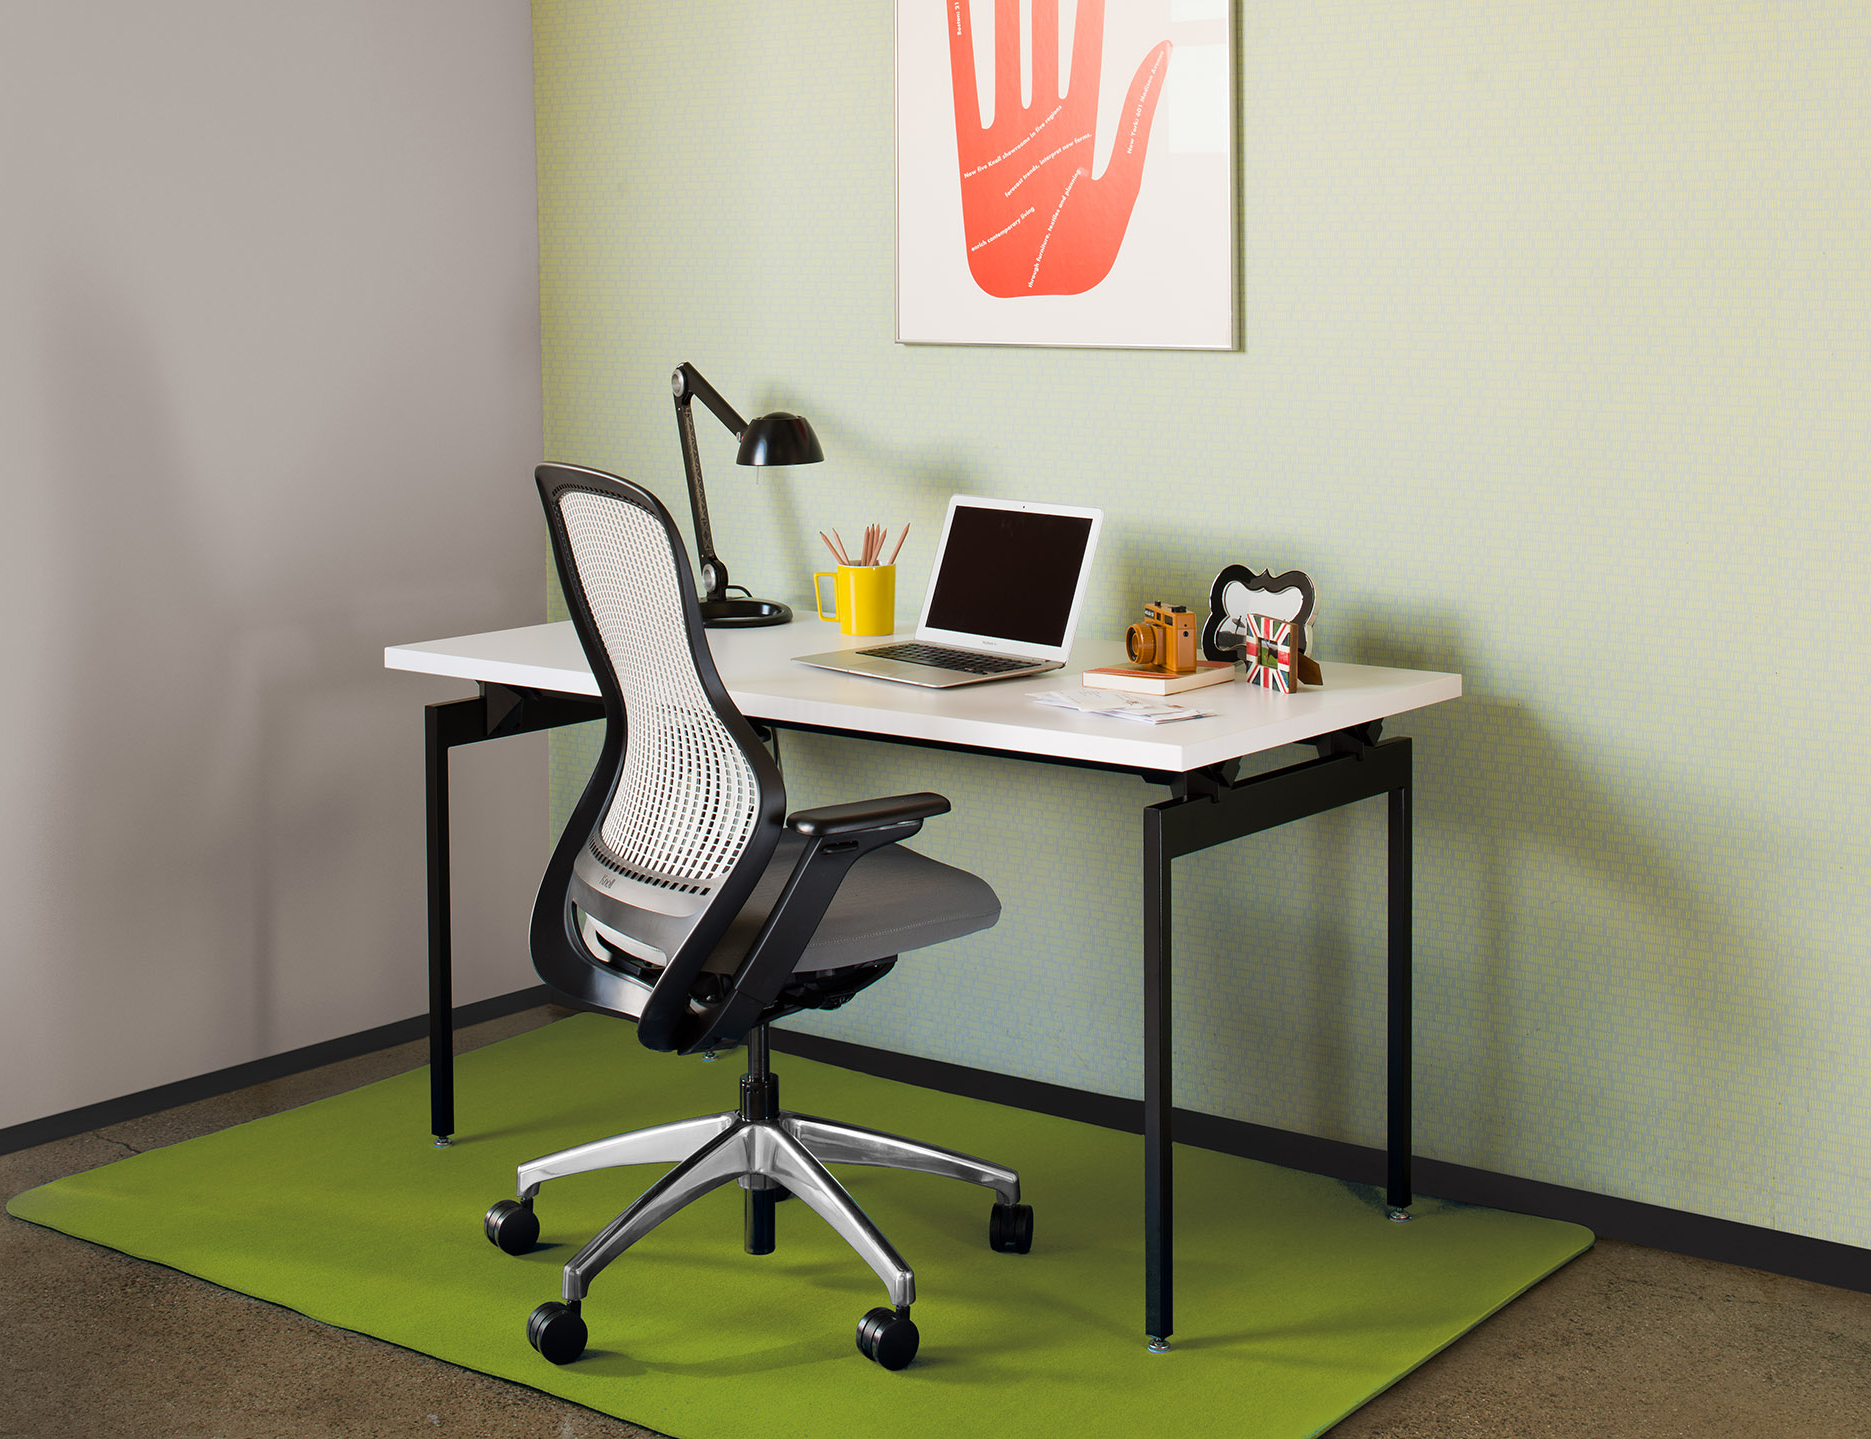 Antenna Design Antenna Desk Home Office ReGeneration Chair